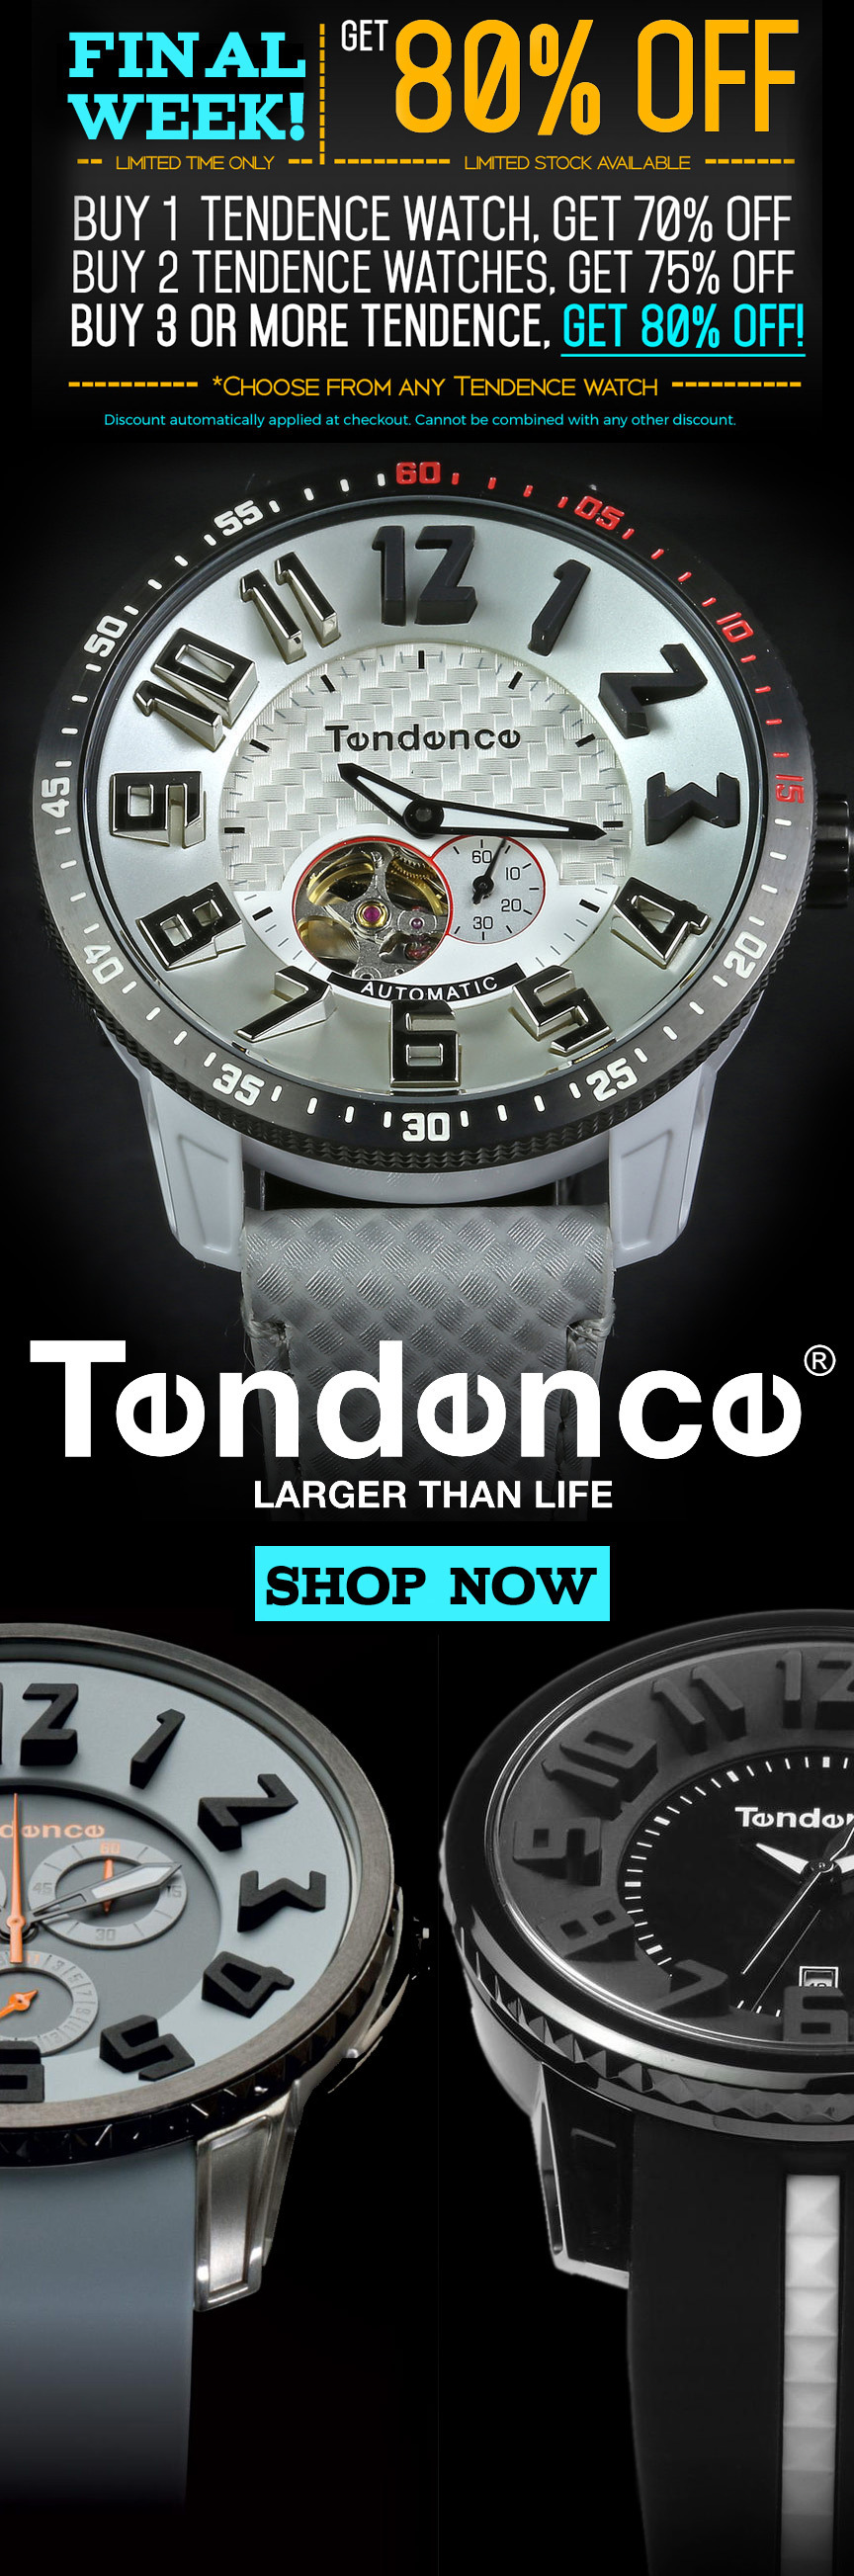 tendence-final-week-80-off